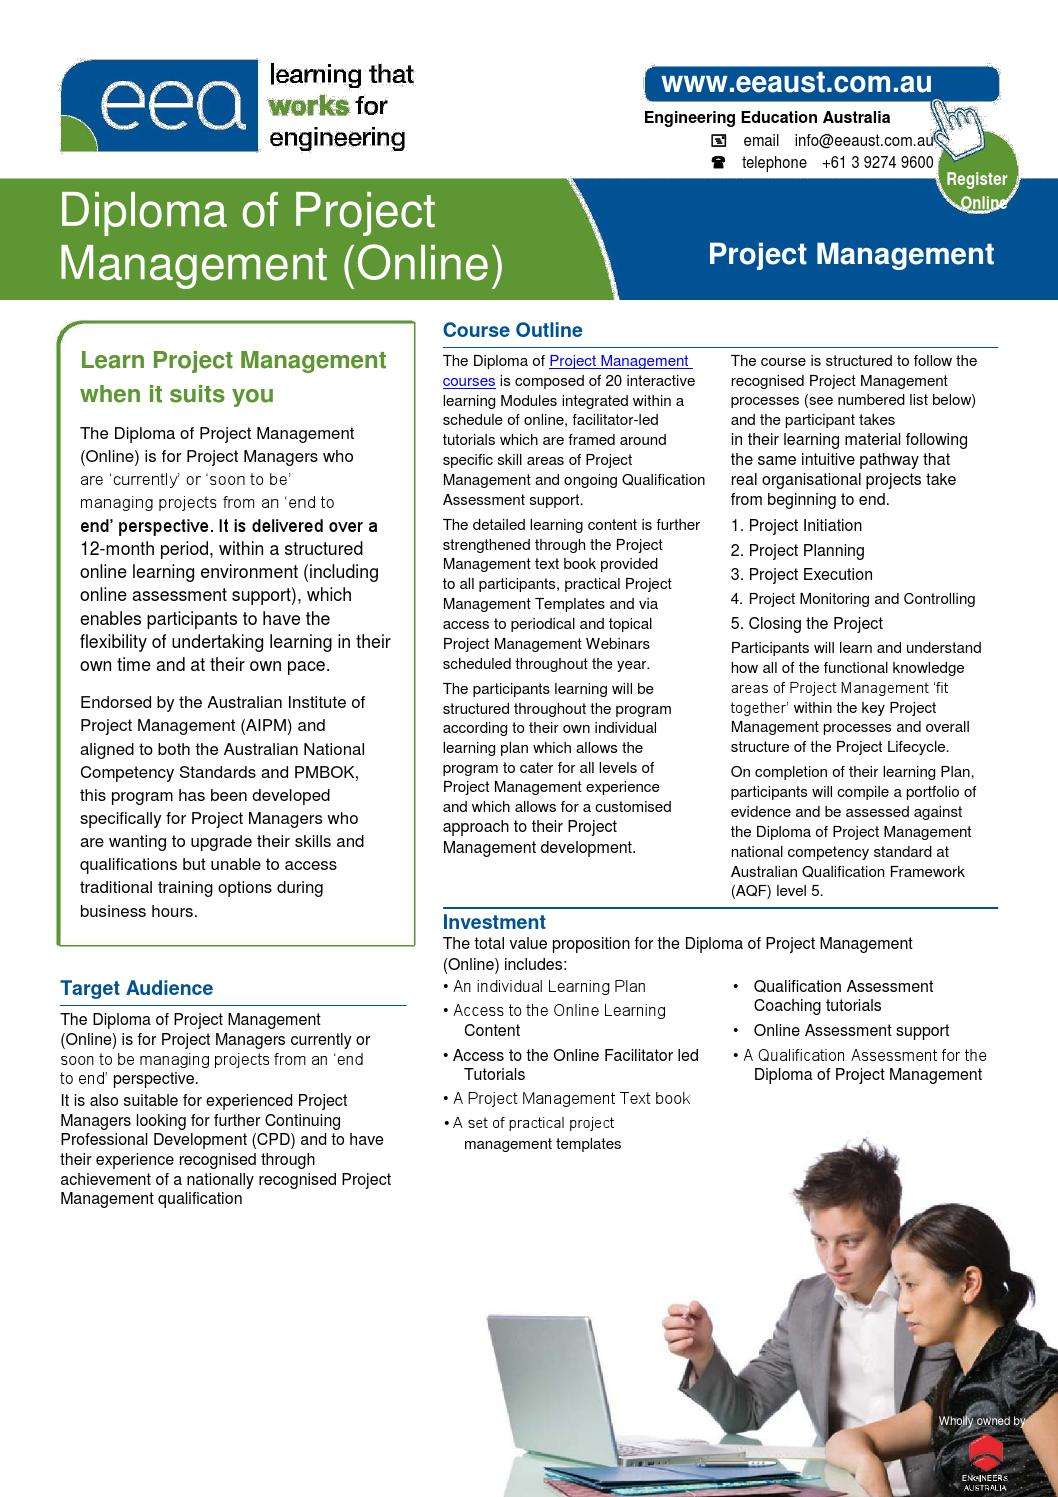 Diploma Of Project Management Online By Paul Coelho  Issuu. Dodd Frank Act Definition Email Fax Solutions. The Difference Between Flu And Cold. How Does Cyber School Work Laser Lipo Phoenix. Property Management Insurance. Staten Island Home Inspectors. Finishing Trades Institute Paducah Ky Dentist. Financial Planner Dallas Erp System Knowledge. Simple Web Site Design Desert Mountain Ob Gyn